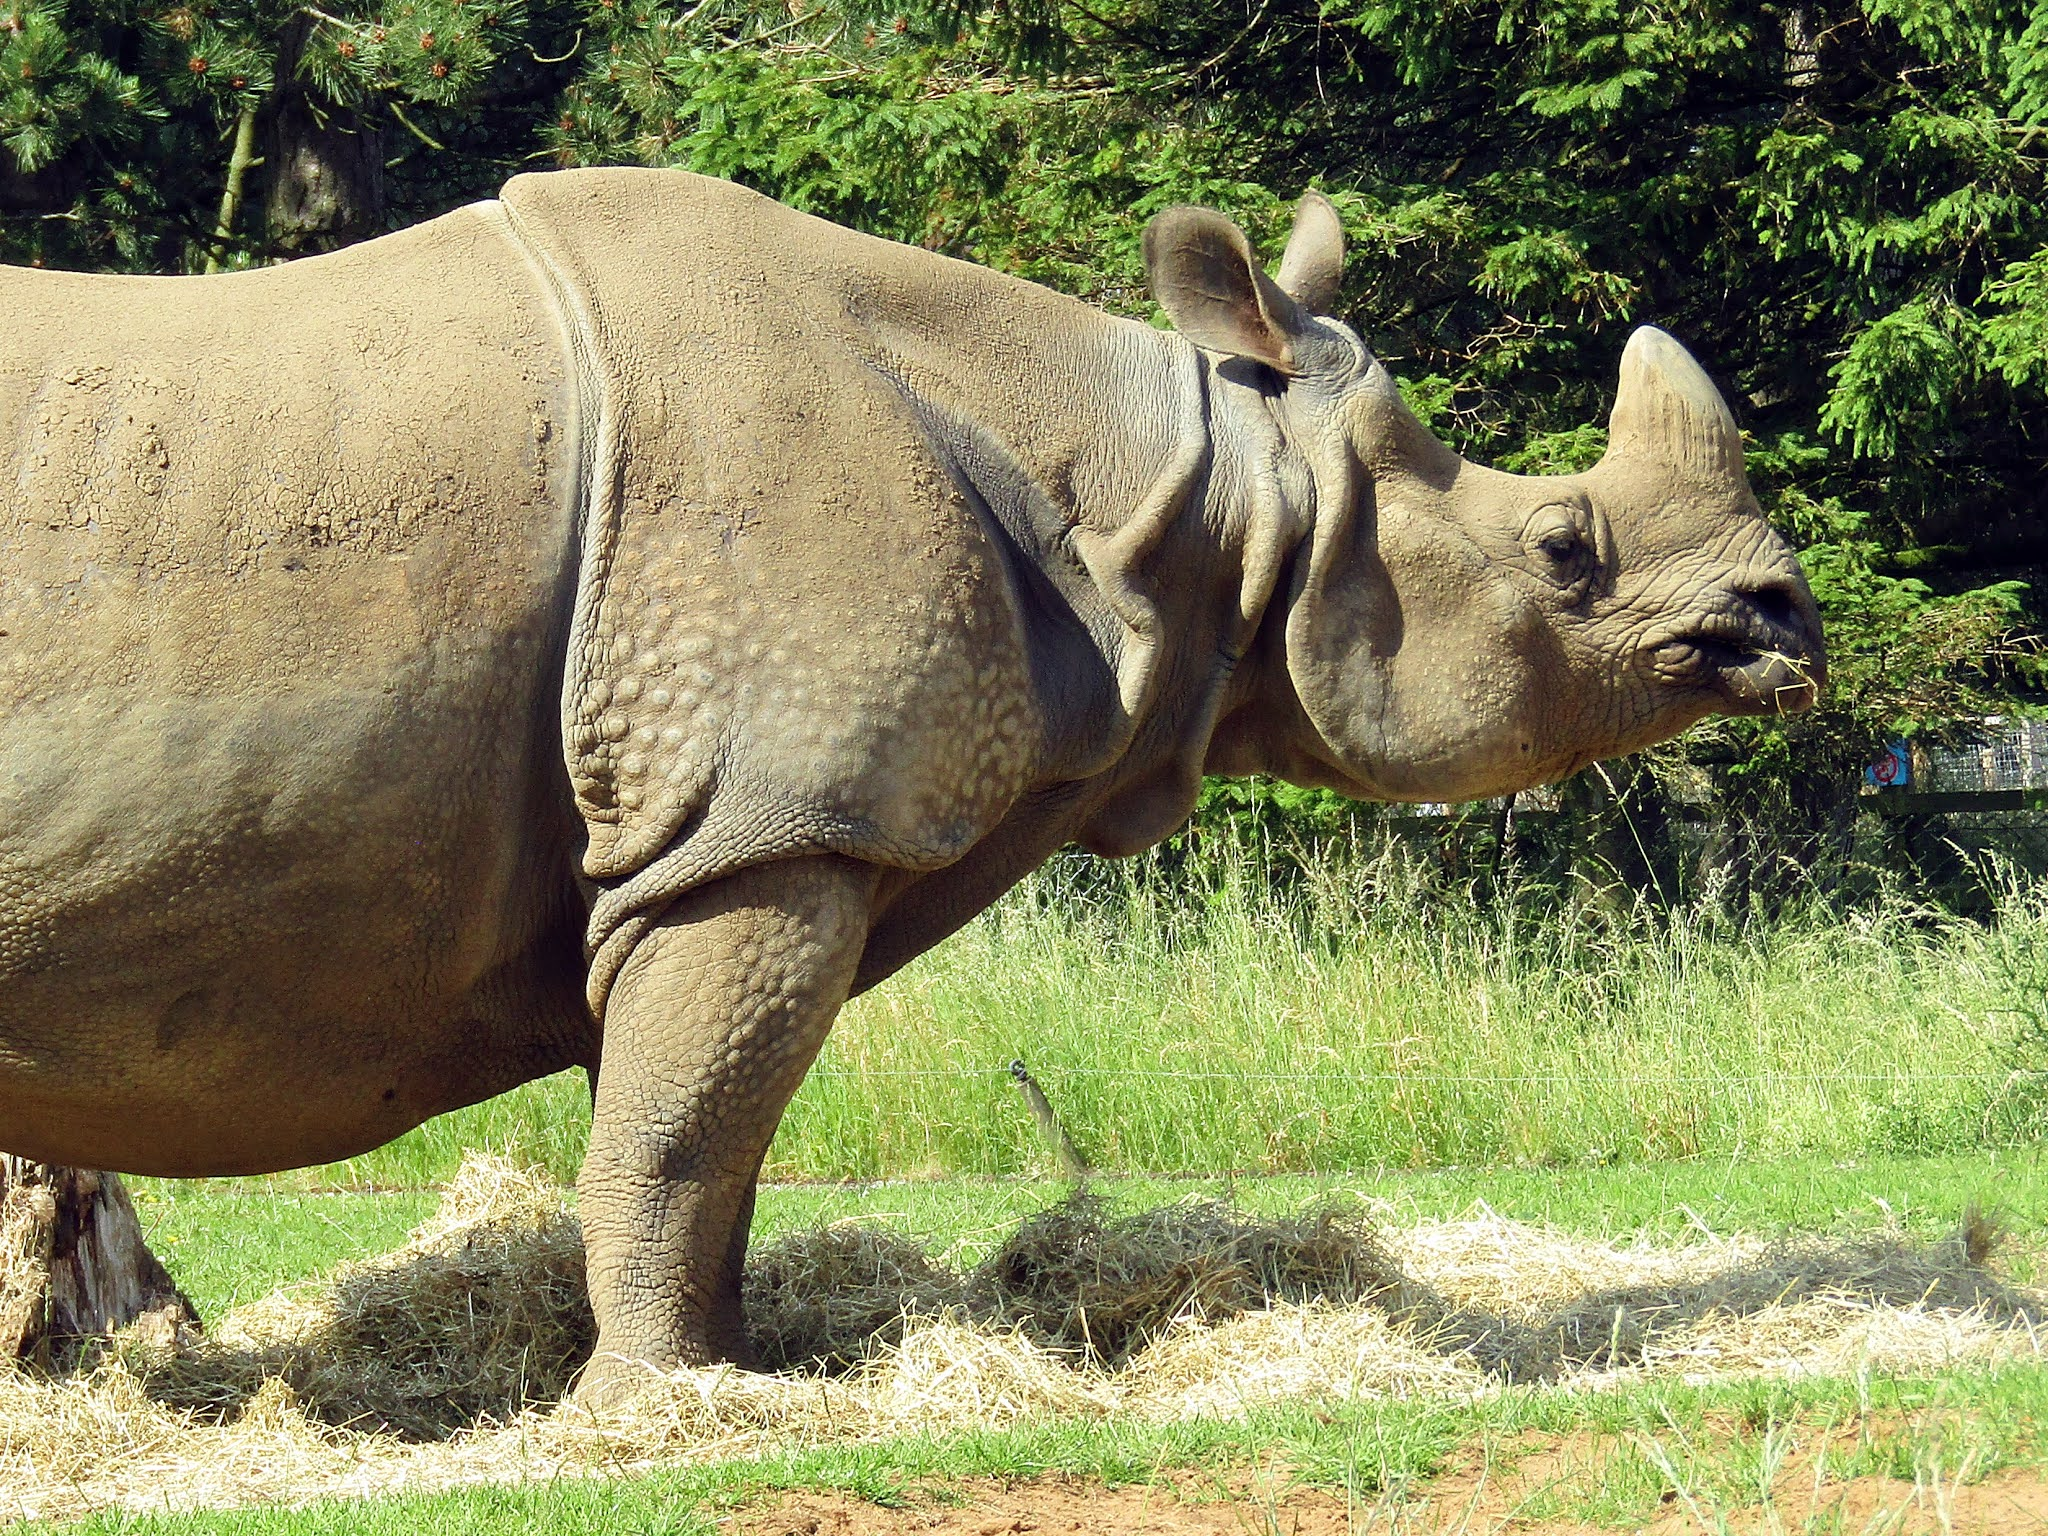 A photo of an adult greater one-horned rhino at Whipsnade Zoo.